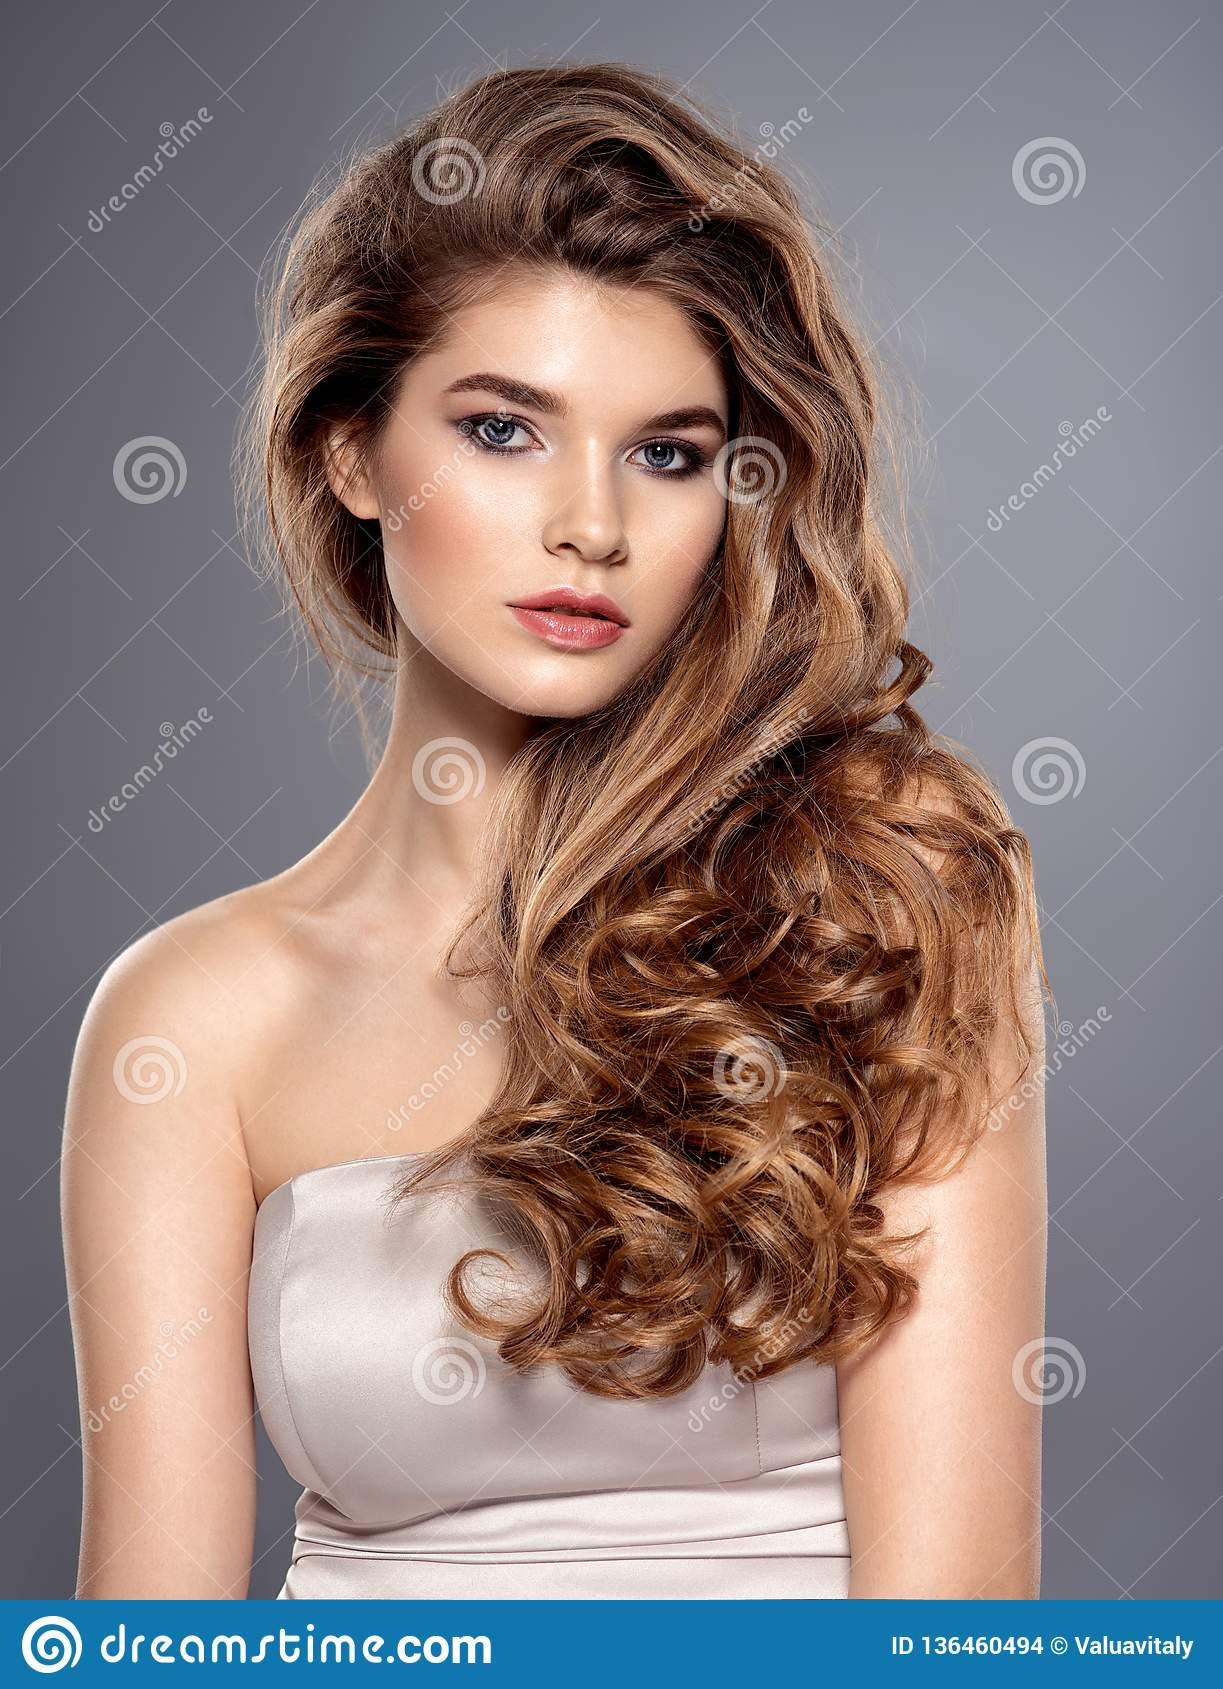 Young Brown Haired Woman With Long Curly Hair Stock Photo Image Of Model Brown 136460494